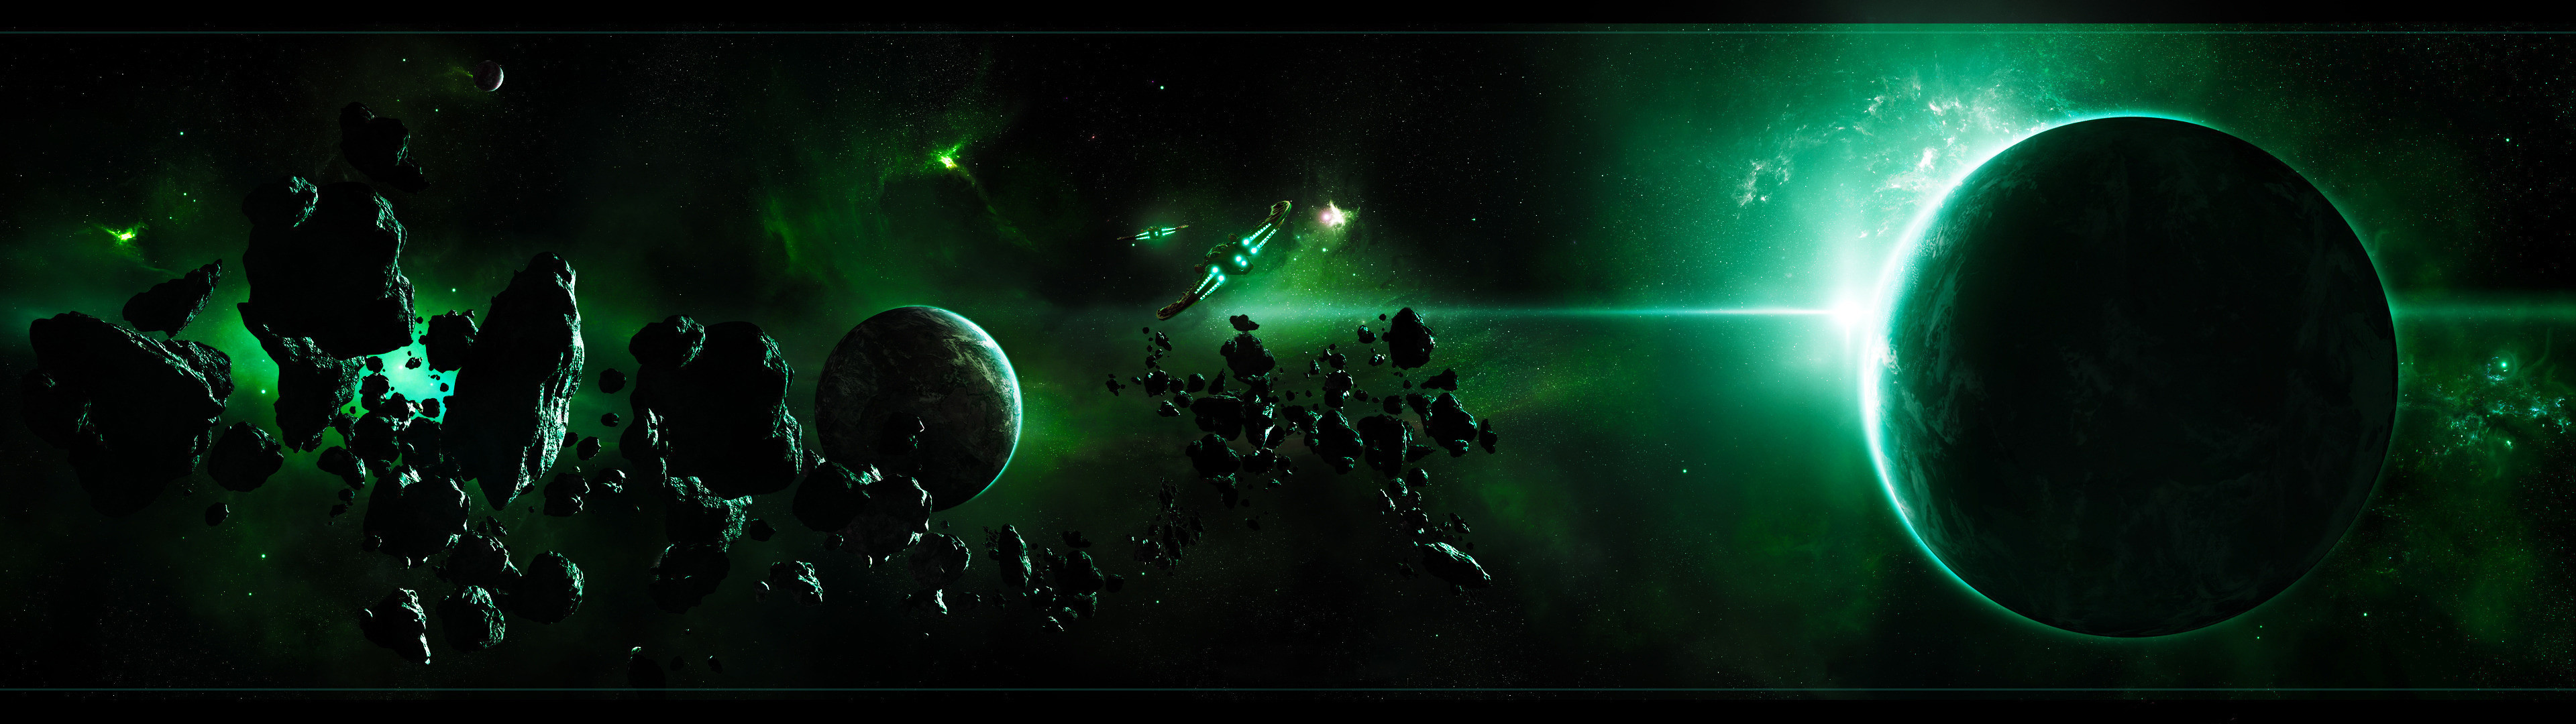 Dual monitor wallpapers space 62 background pictures - Dual monitor space wallpaper ...